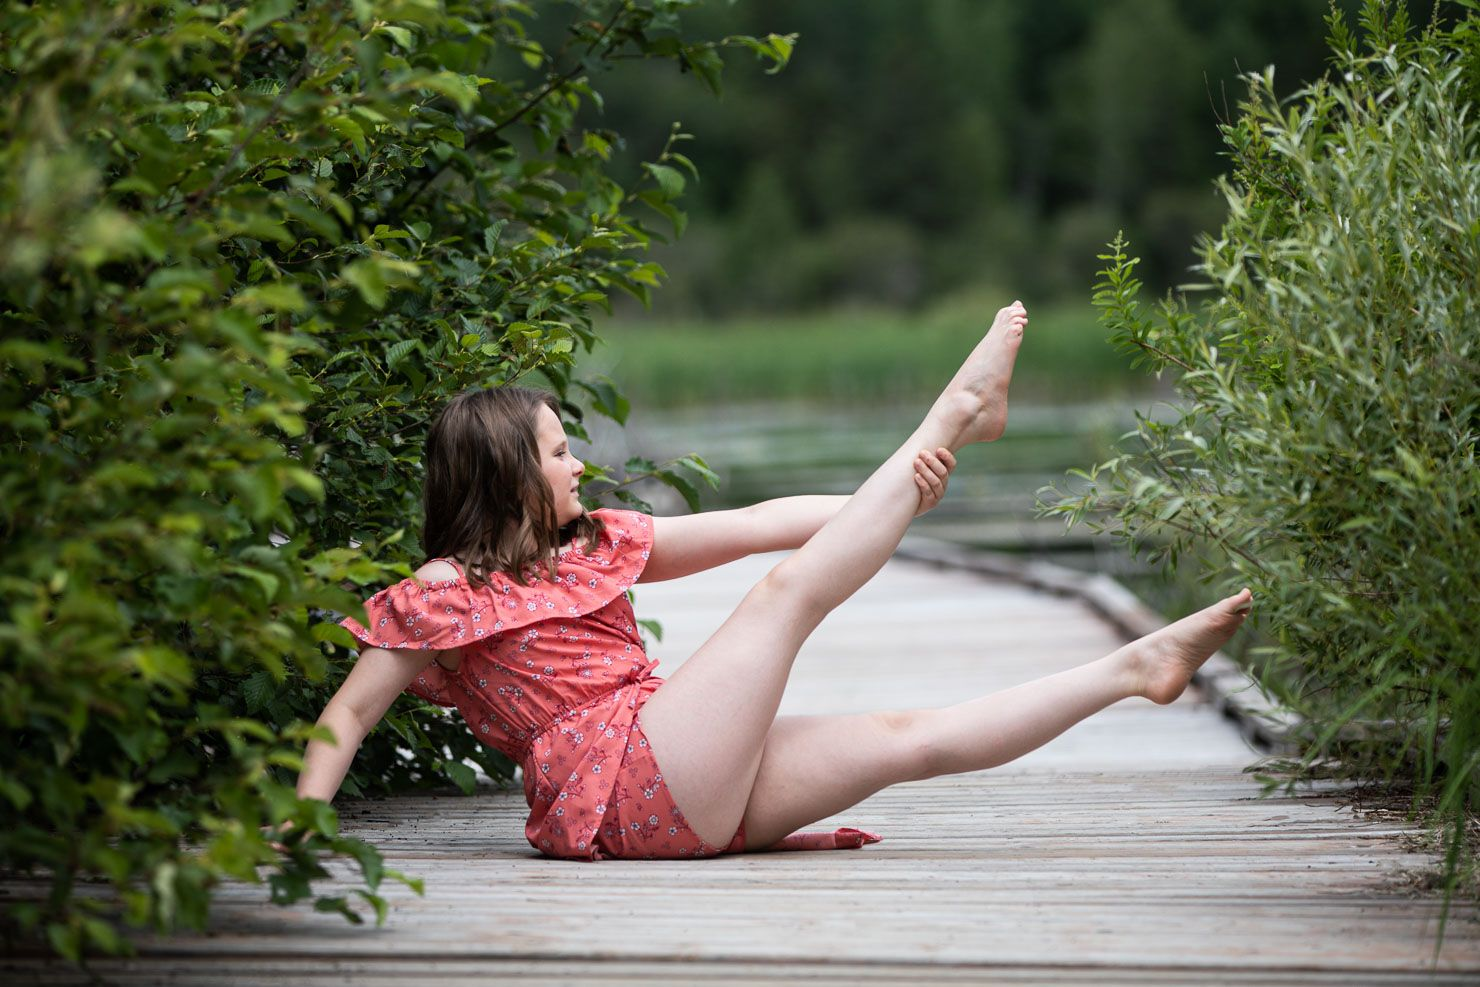 Boardwalk, Ballet Dancer, Dancer, Dance Pose, Dance by aKaiserPhoto, Dance Photographer